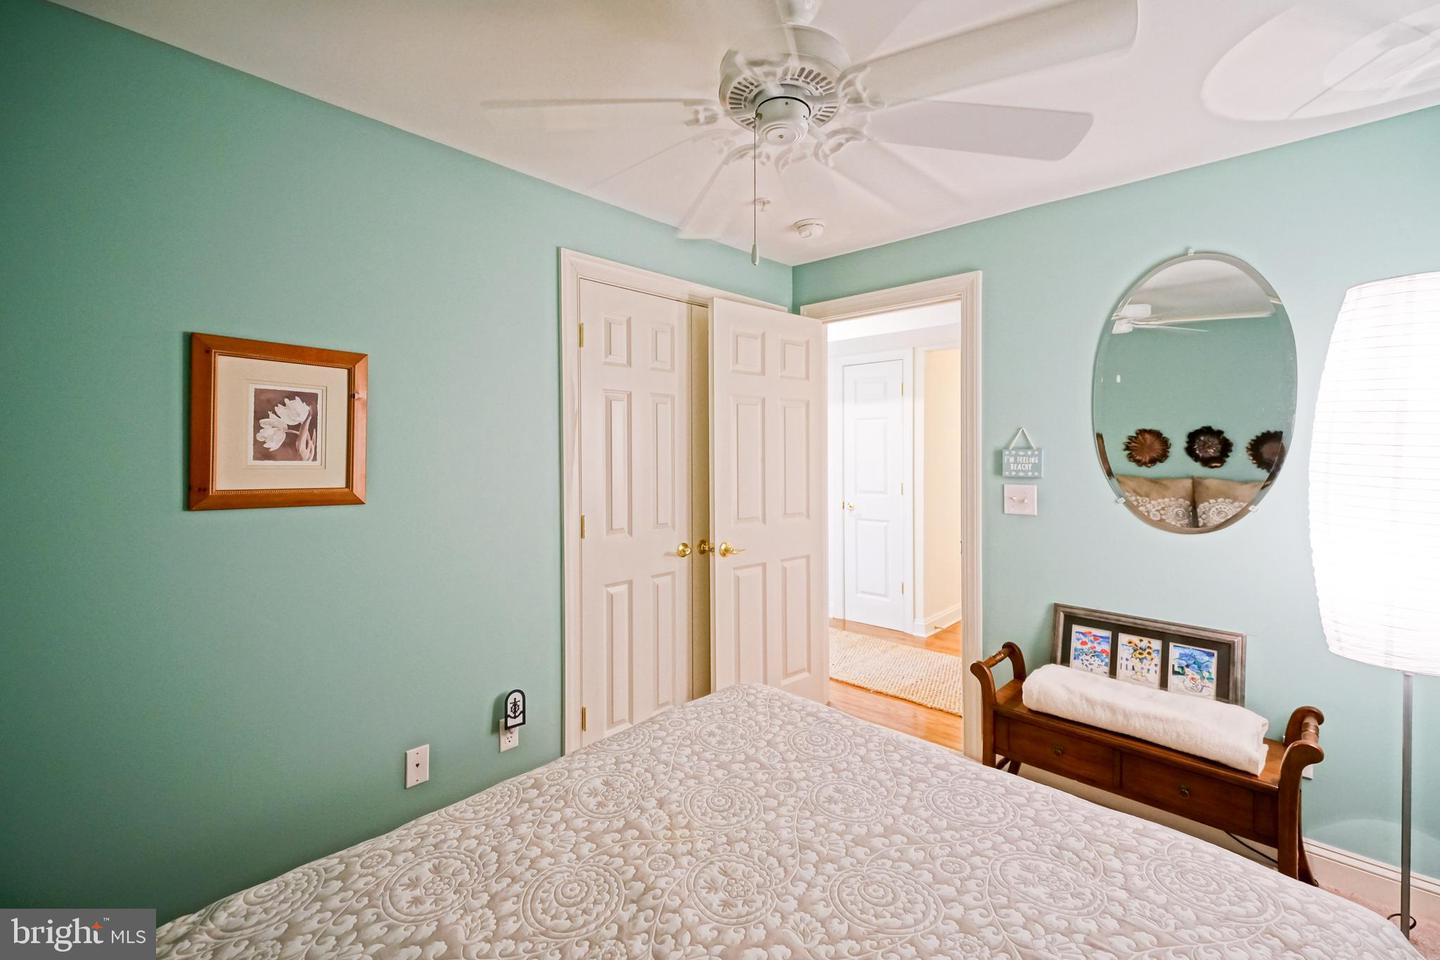 DESU134244-301557386973-2019-04-27-11-33-25 404 E Savannah Rd #203 | Lewes, DE Real Estate For Sale | MLS# Desu134244  - Lee Ann Group